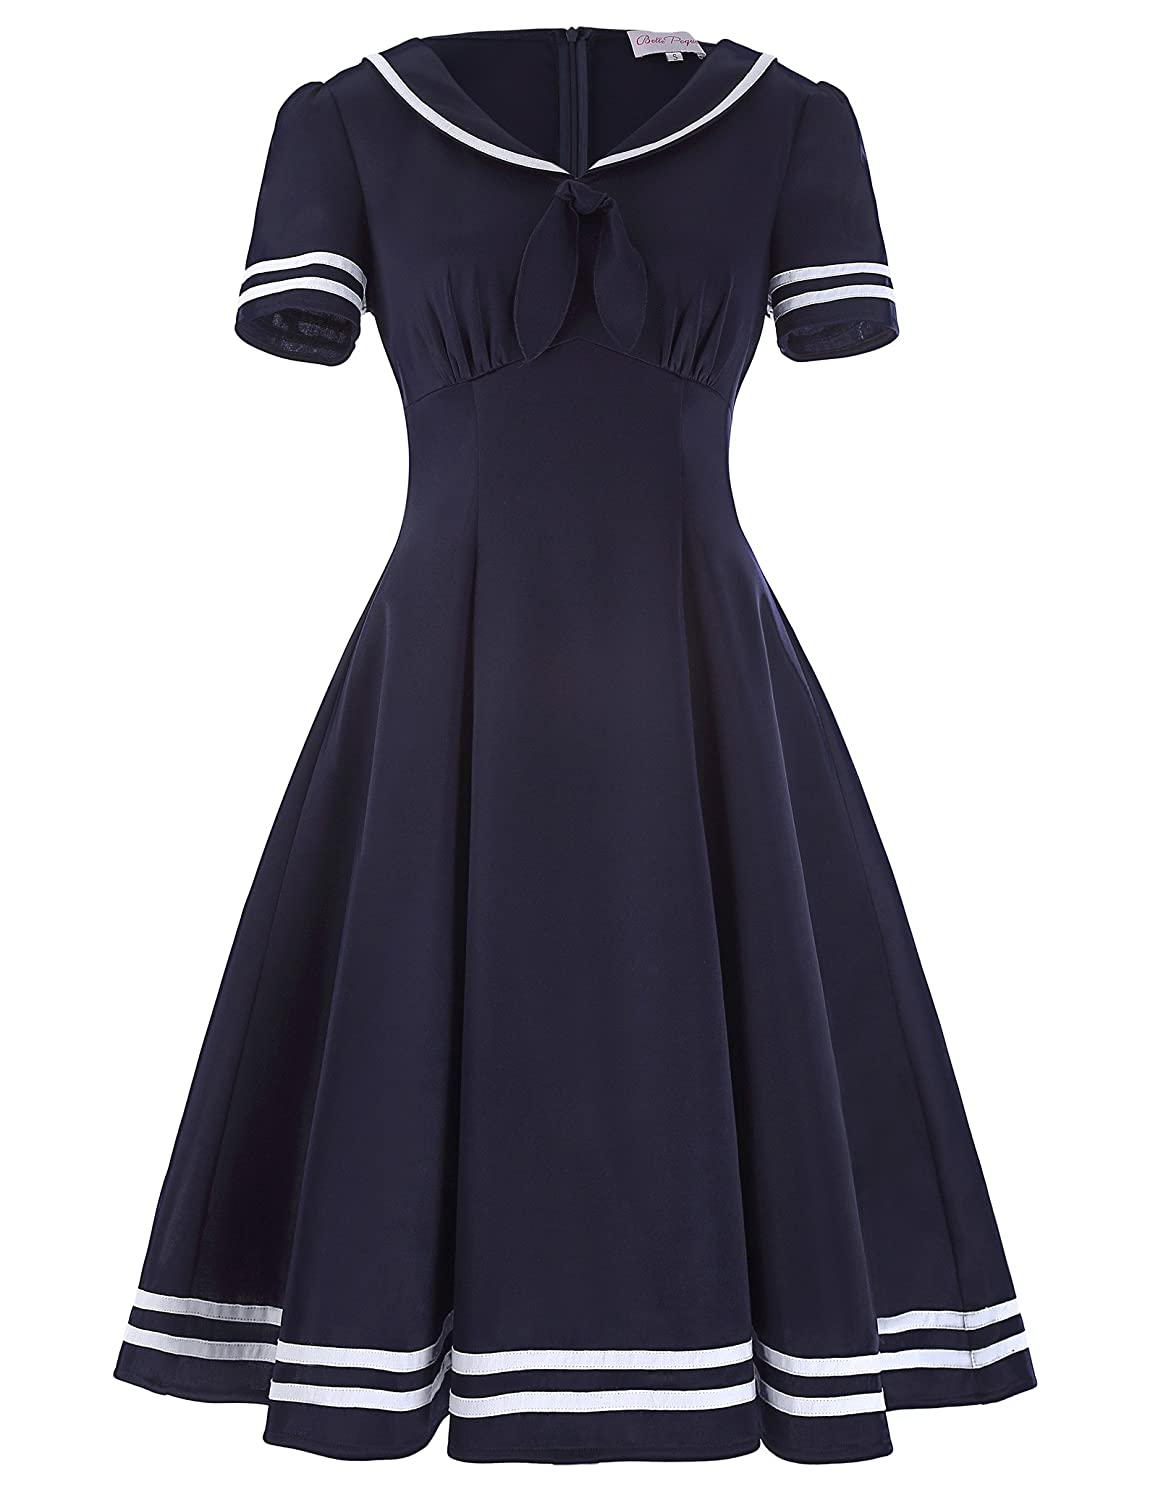 1950s Dresses, 50s Dresses | 1950s Style Dresses Belle Poque Womens Retro Sailor Dress Short Sleeve Cocktail Party Swing Dress $29.99 AT vintagedancer.com